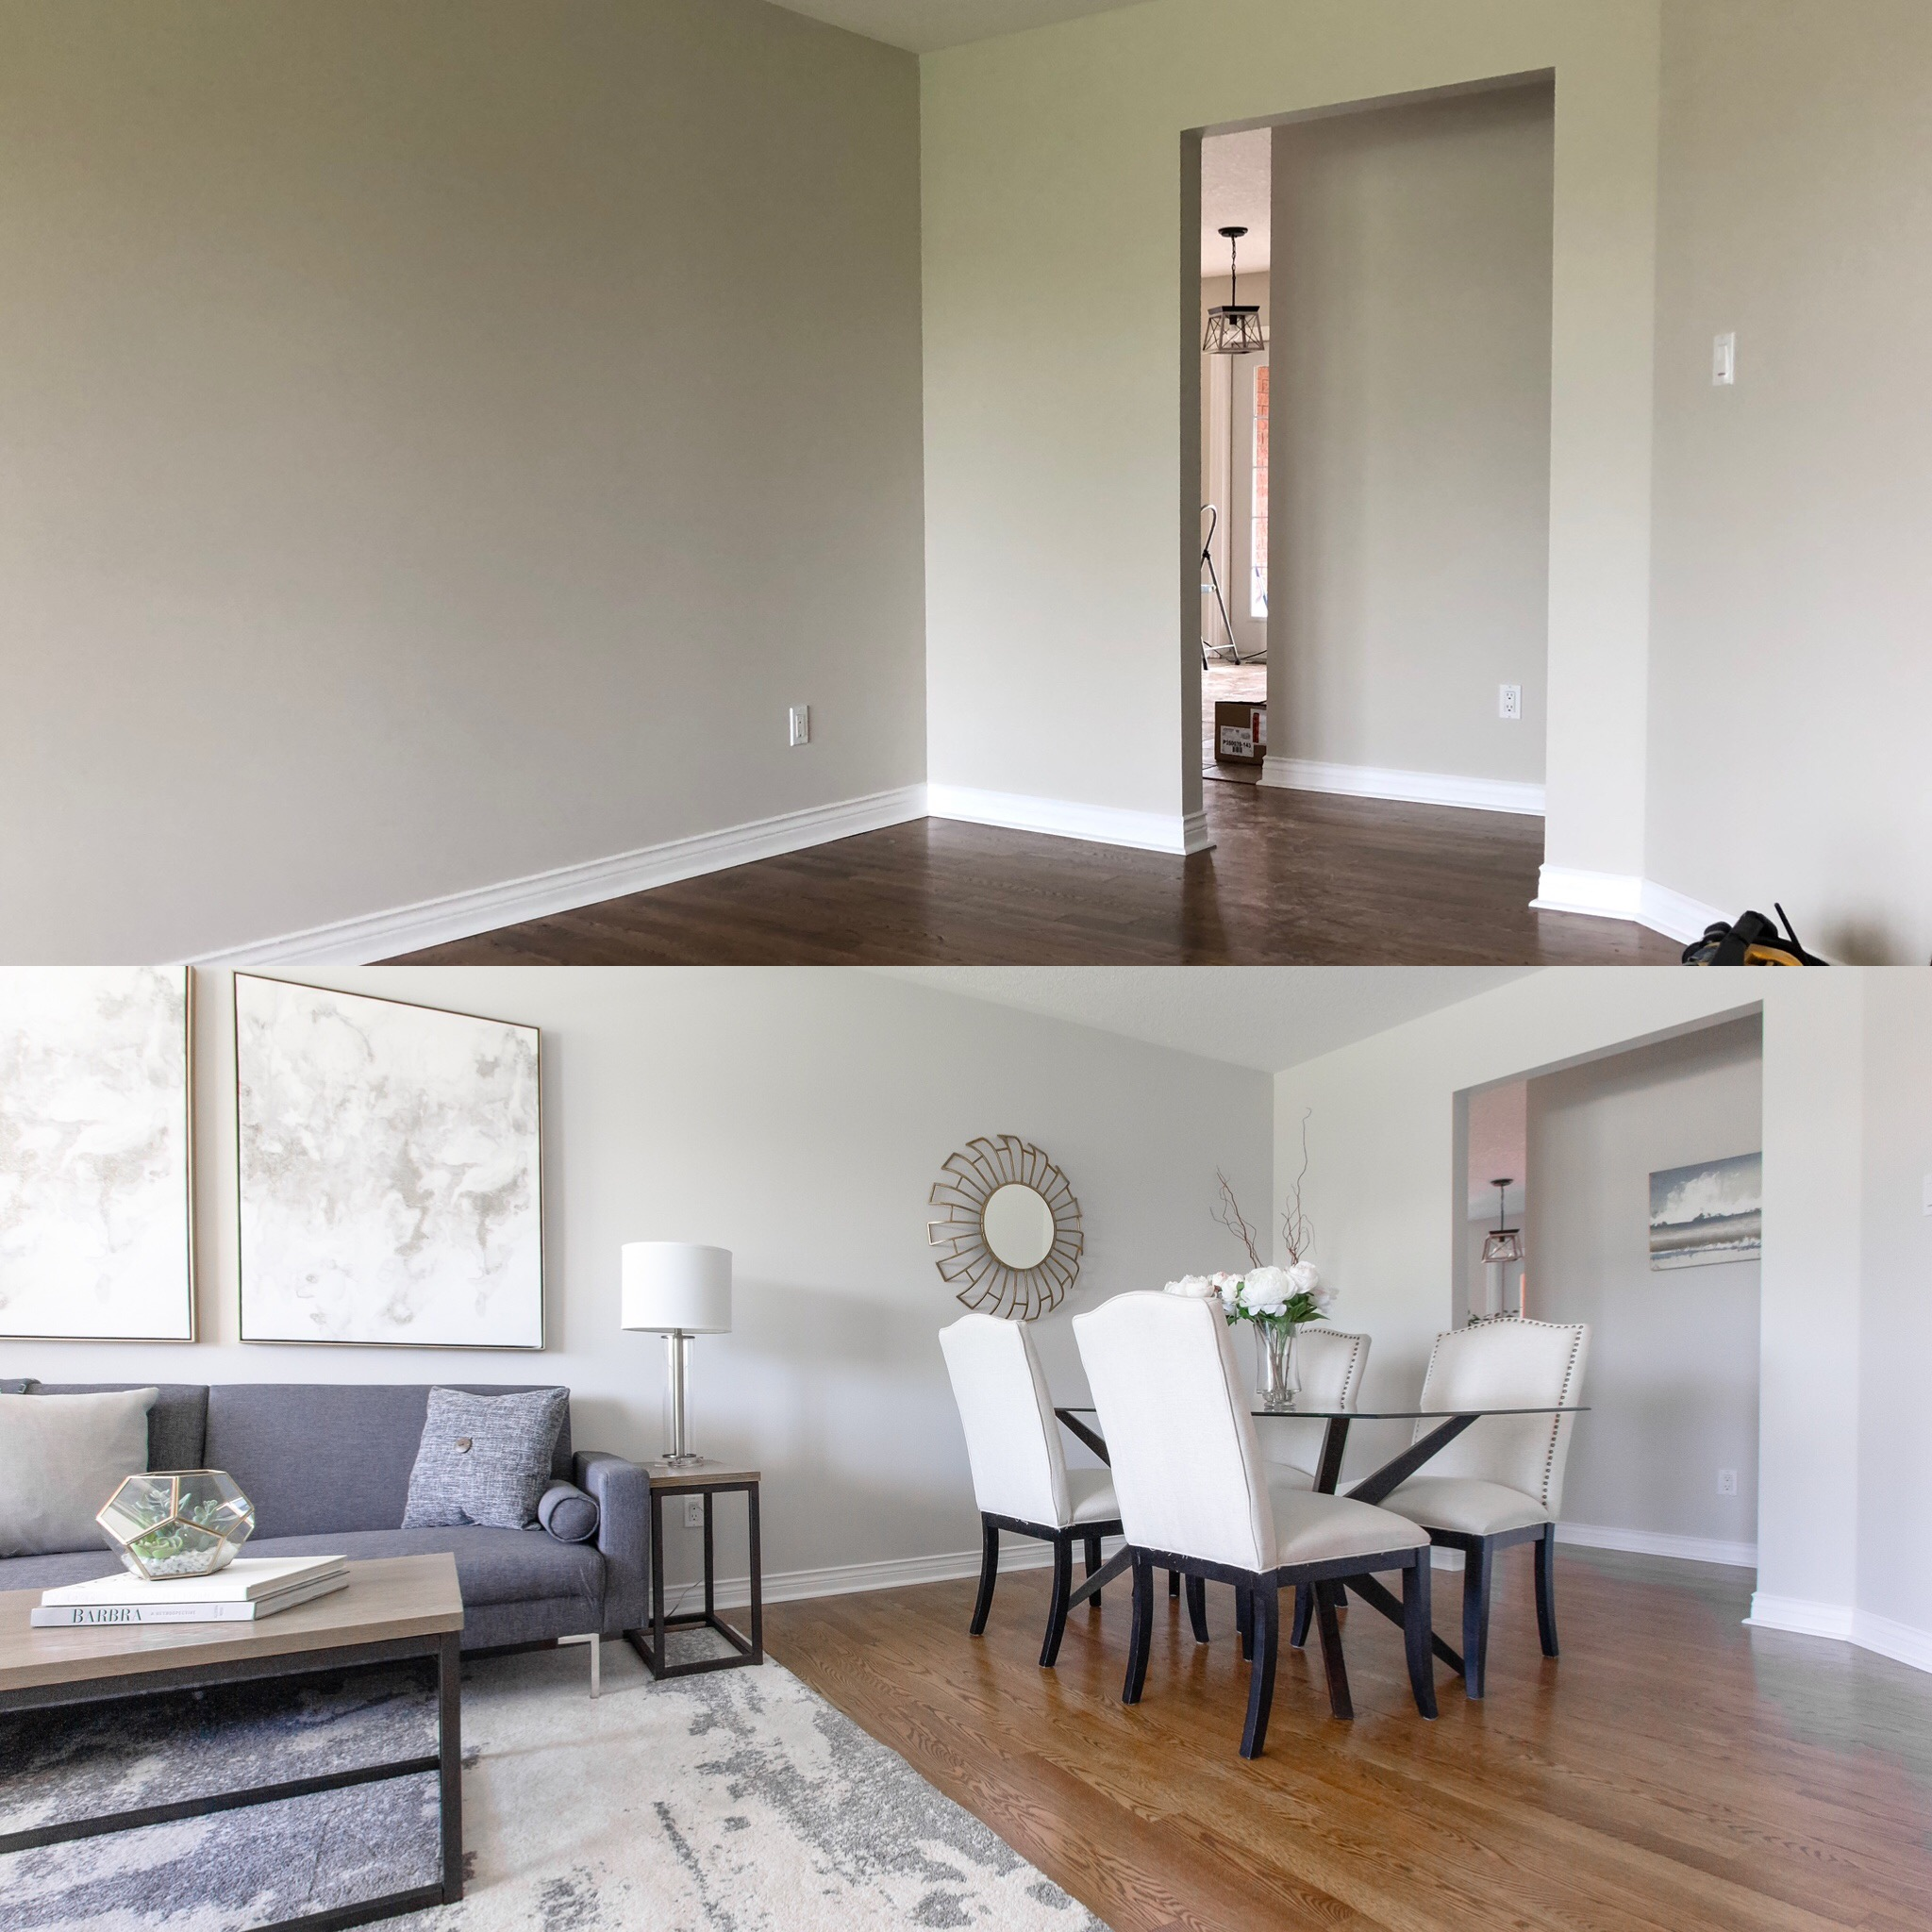 Before & After of living room/dining room